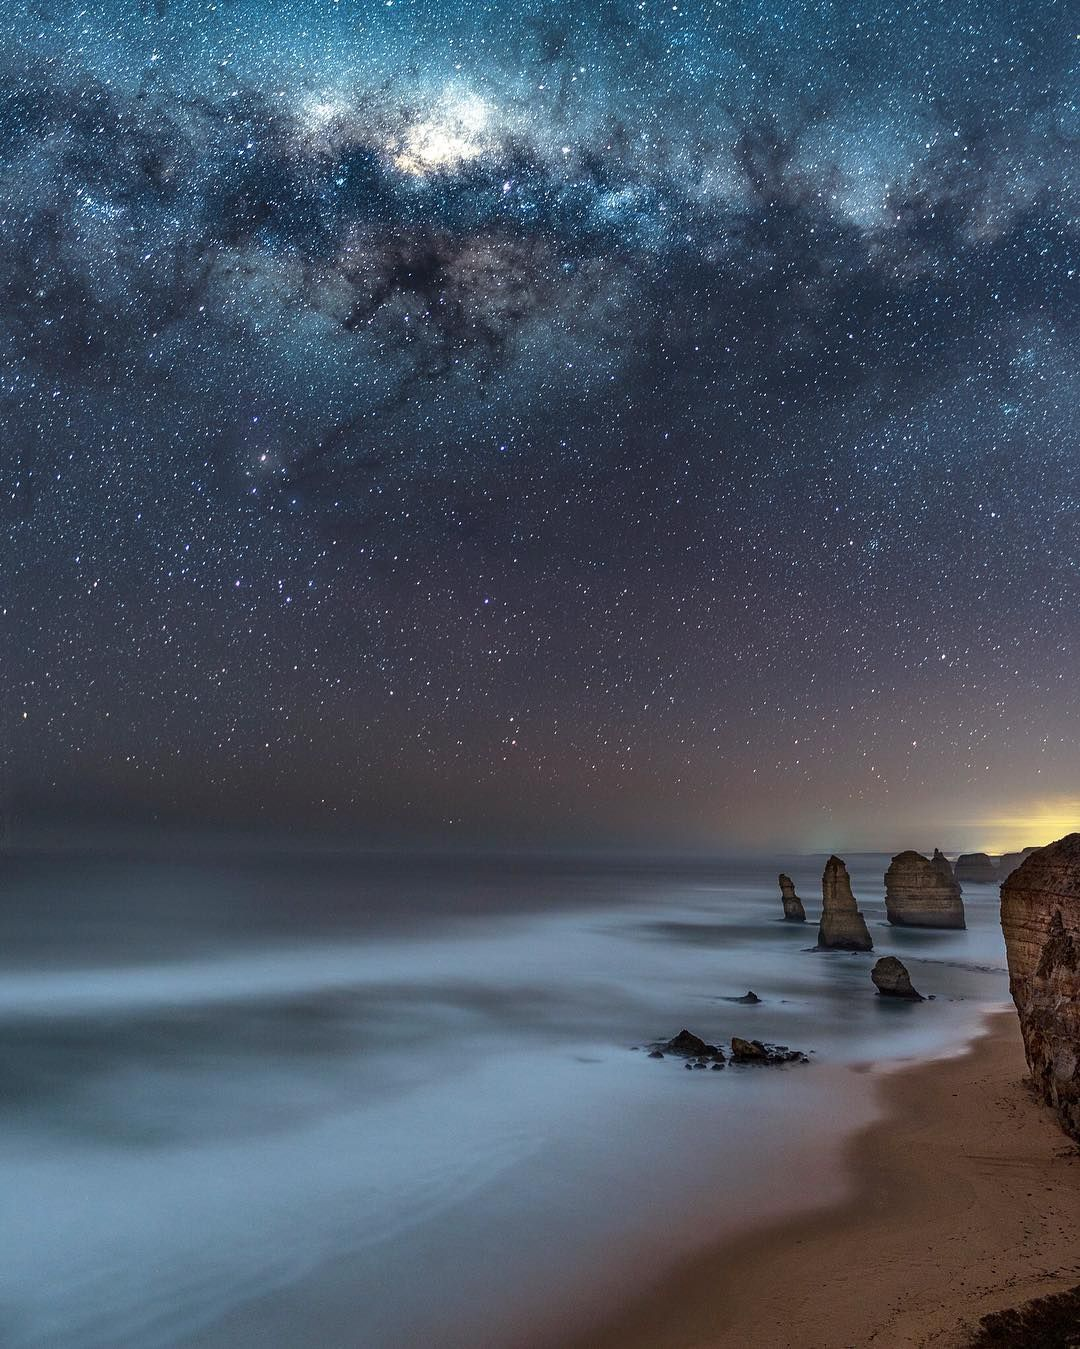 Landscape Photography 32 Fantastic Photos: Gorgeous Nightscape And Astrophotography By Craig Richards